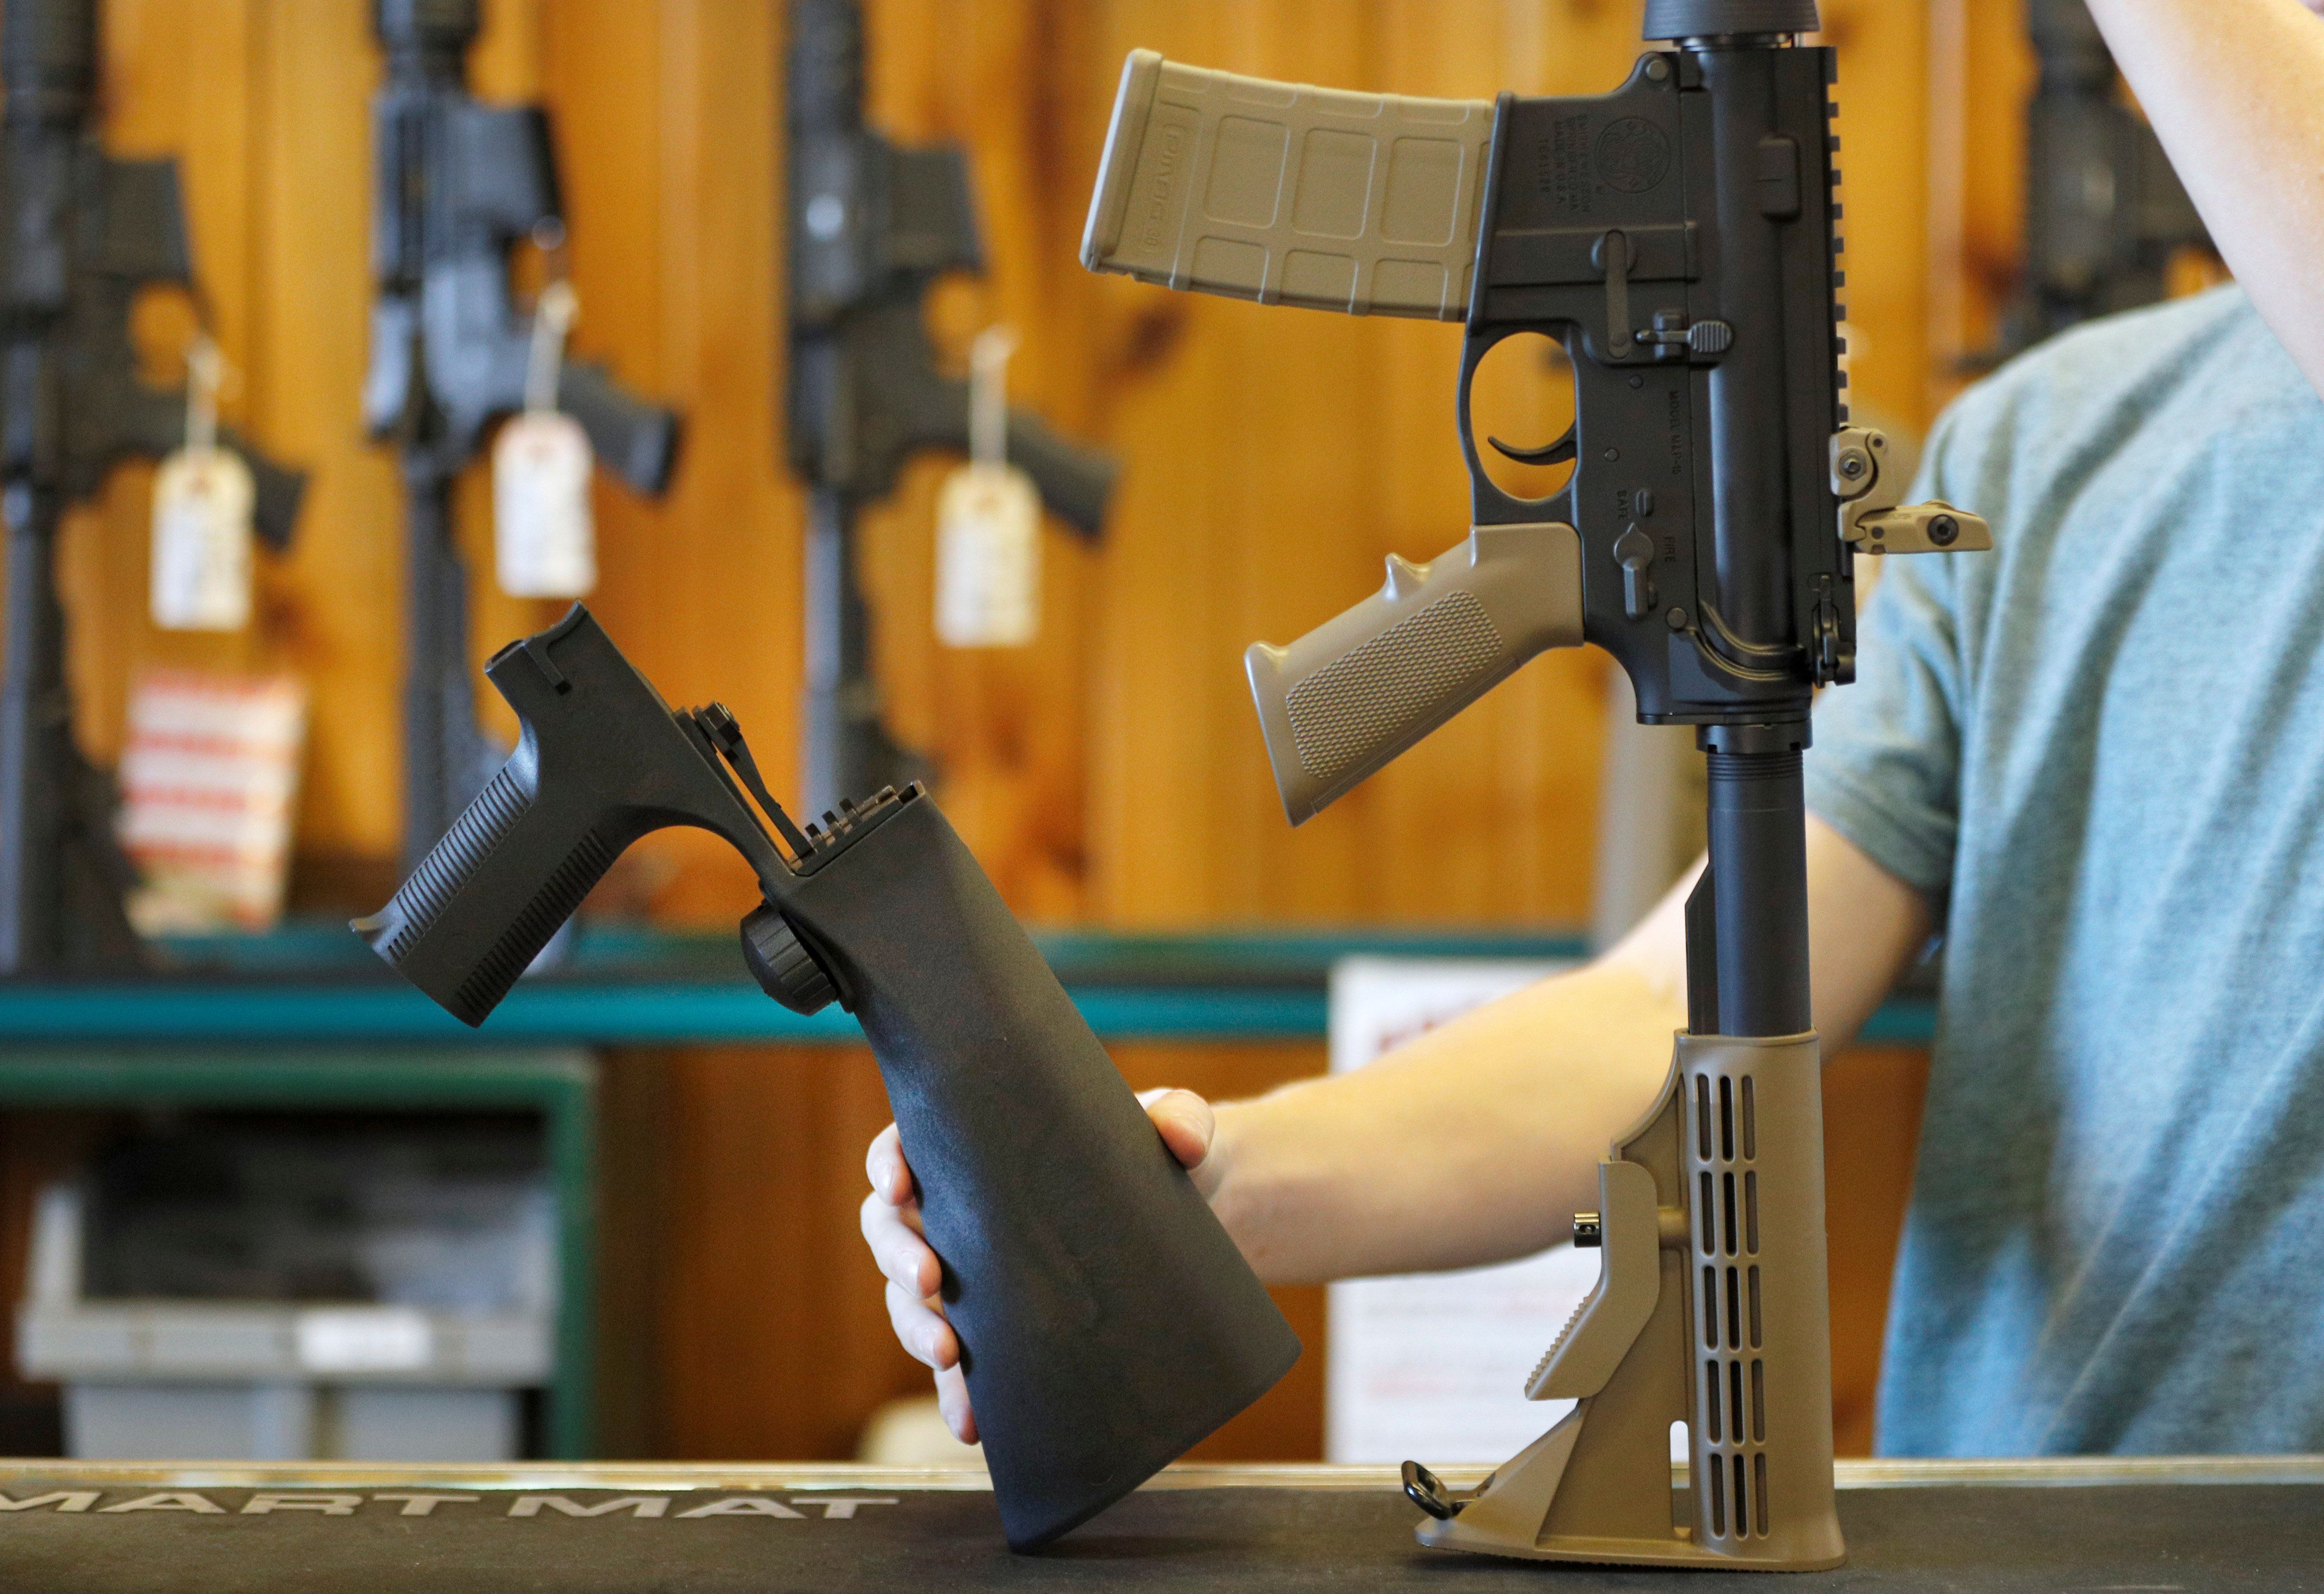 A bump fire stock, (L), that attaches to an semi-automatic assault rifle to increase the firing rate is seen at Good Guys Gun Shop in Orem, Utah, U.S., October 4, 2017. REUTERS/George Frey